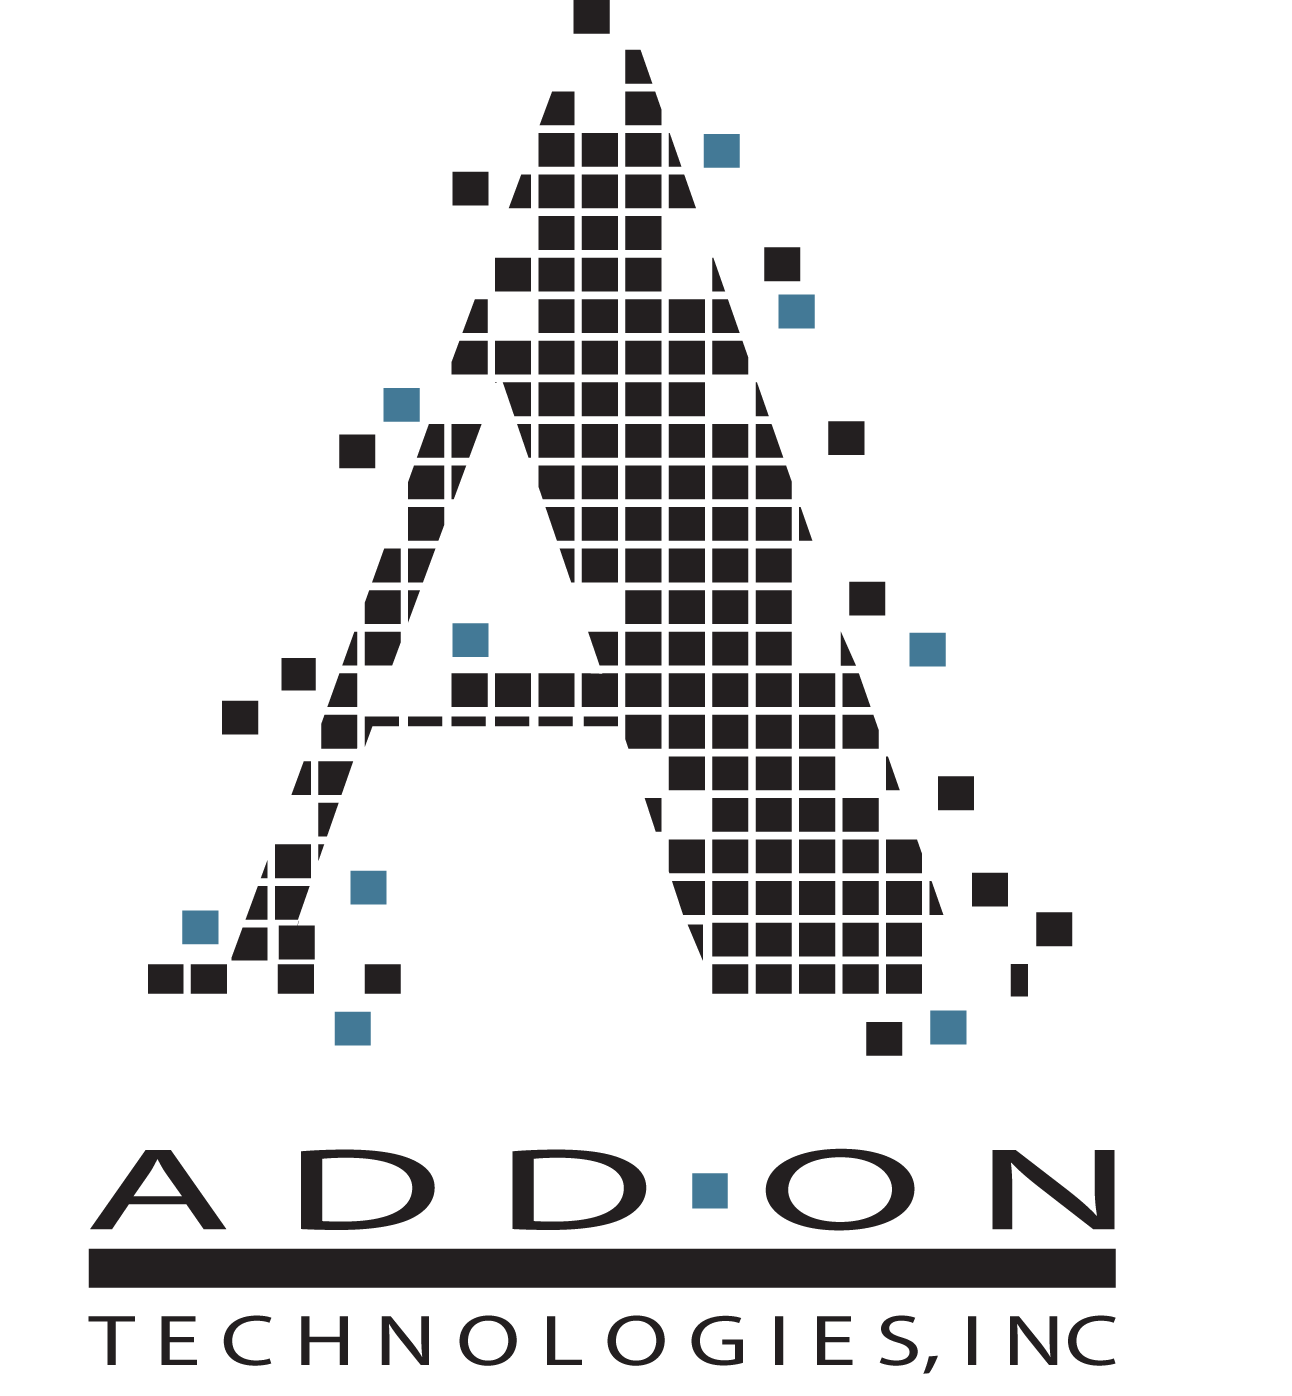 add_on_technologies.png